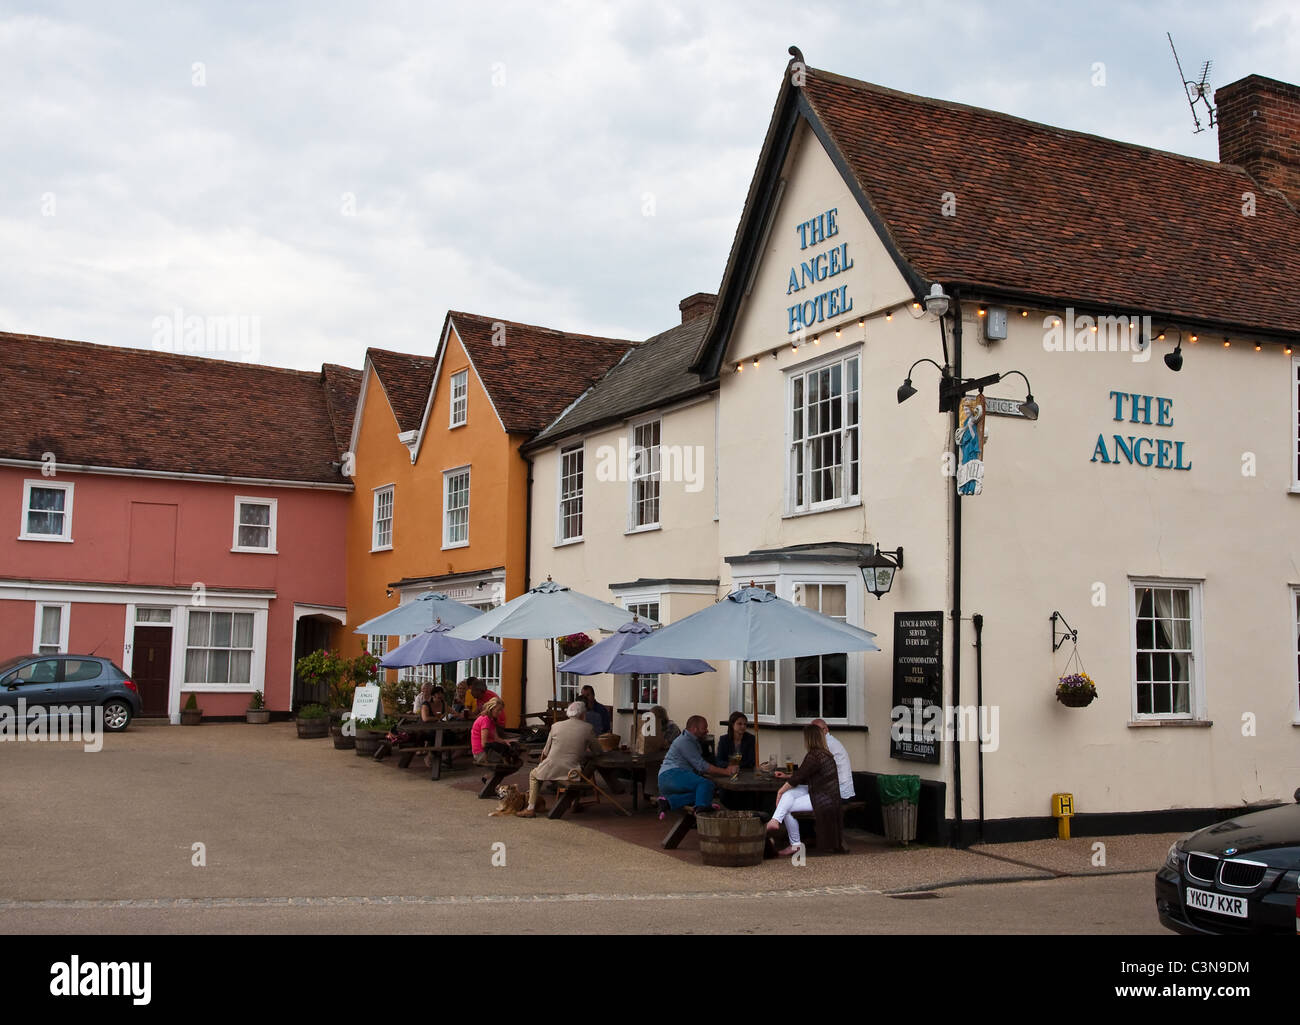 People enjoying a drink at the Angel Hotel and Pub in Lavenham, Suffolk Stock Photo